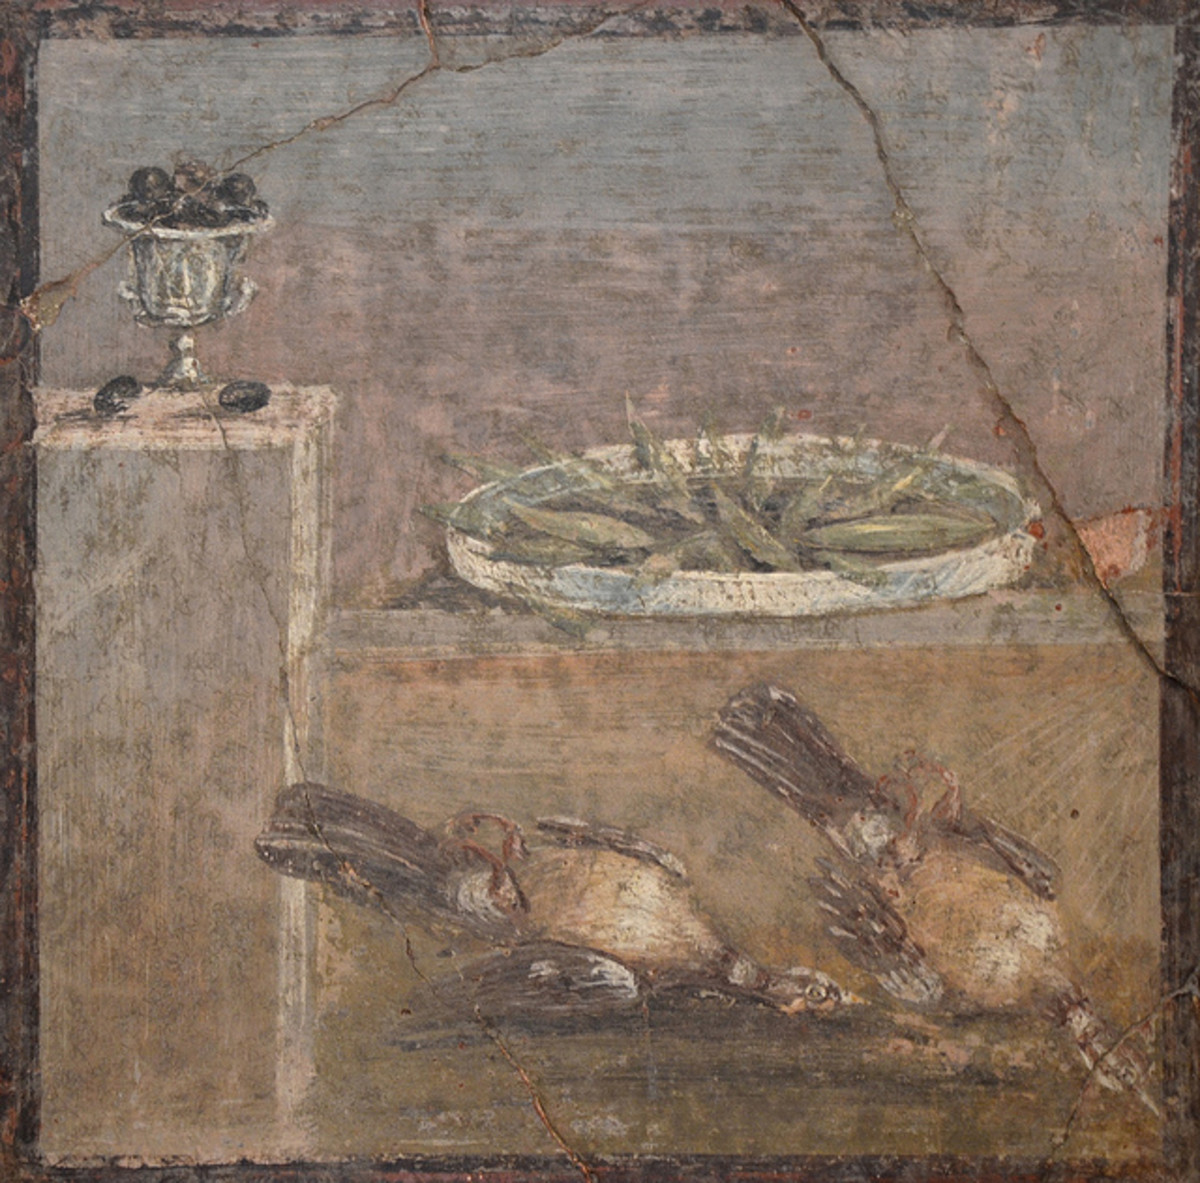 An ancient Roman fresco portraying foods, a cup of olives among them